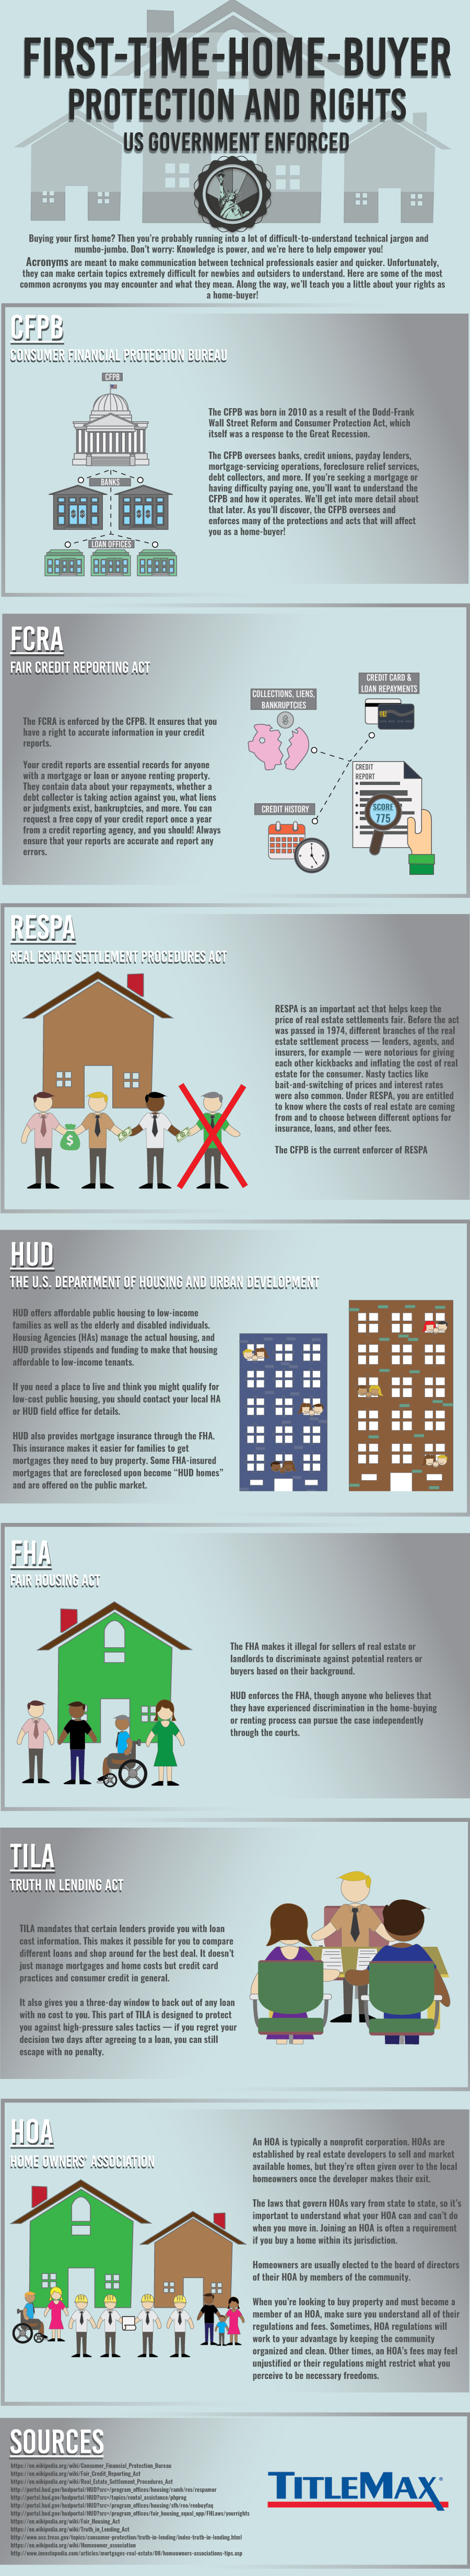 Rights You Need To Know As A First Time Home Buyer #Infographic